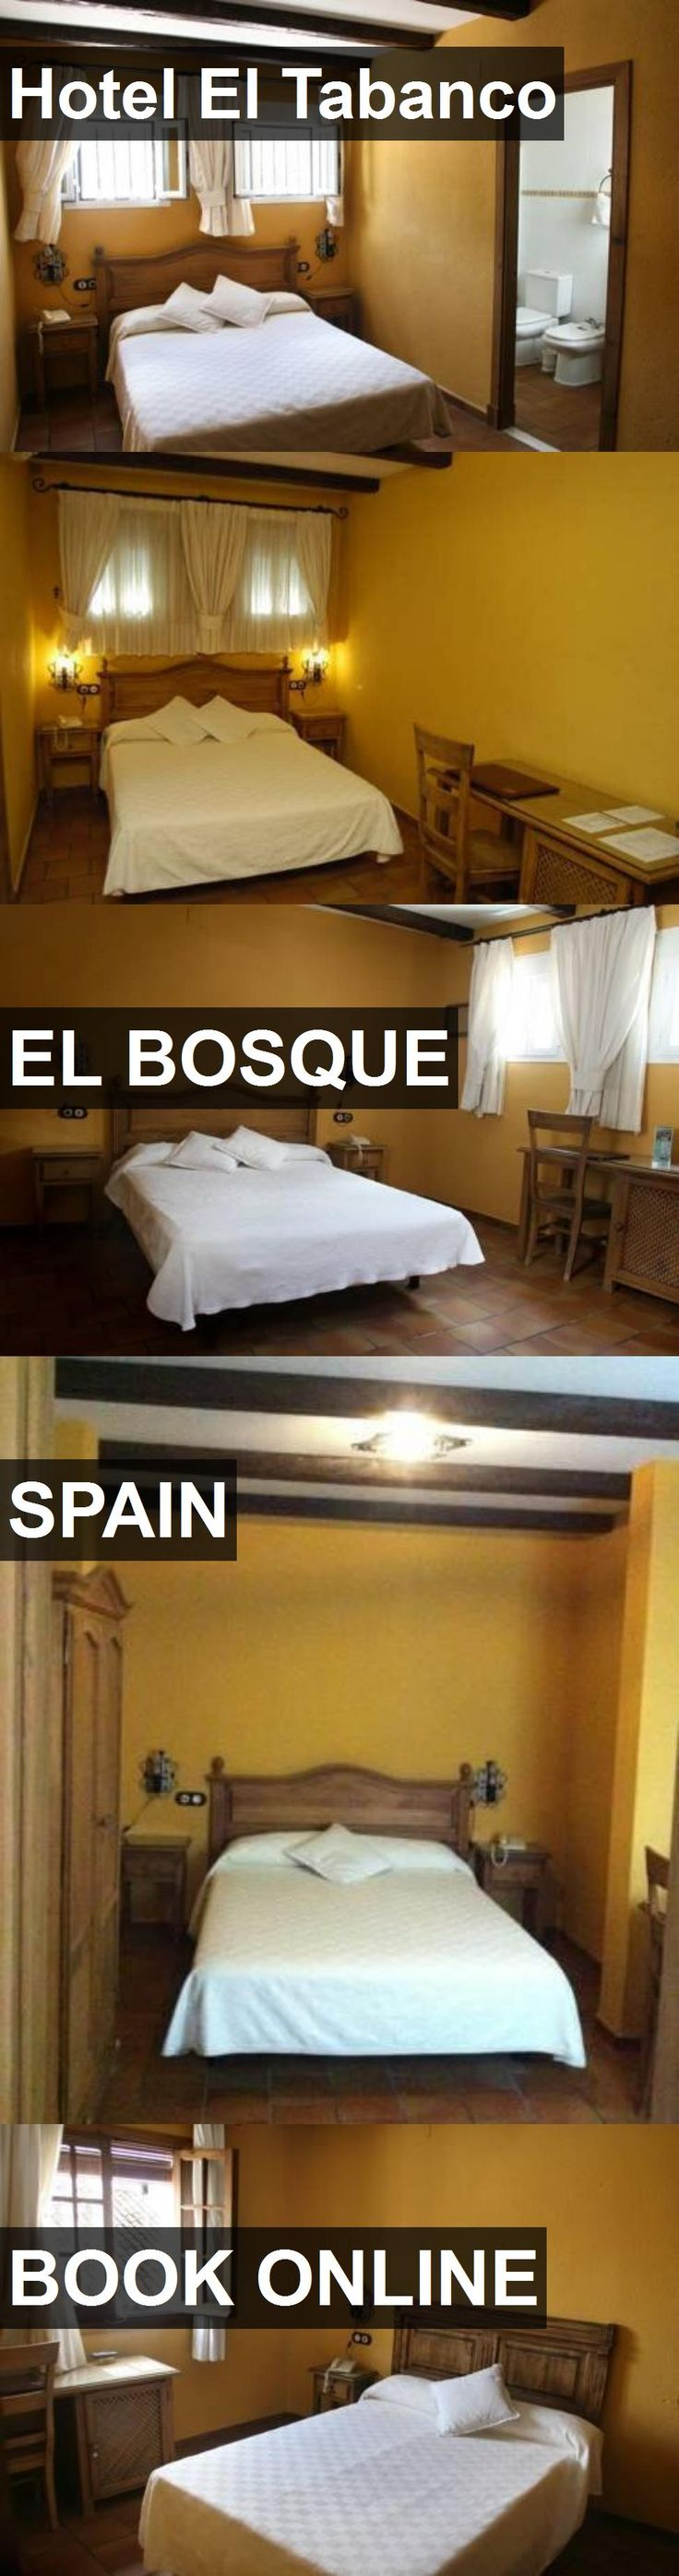 Hotel El Tabanco in El Bosque, Spain. For more information, photos, reviews and best prices please follow the link. #Spain #ElBosque #travel #vacation #hotel